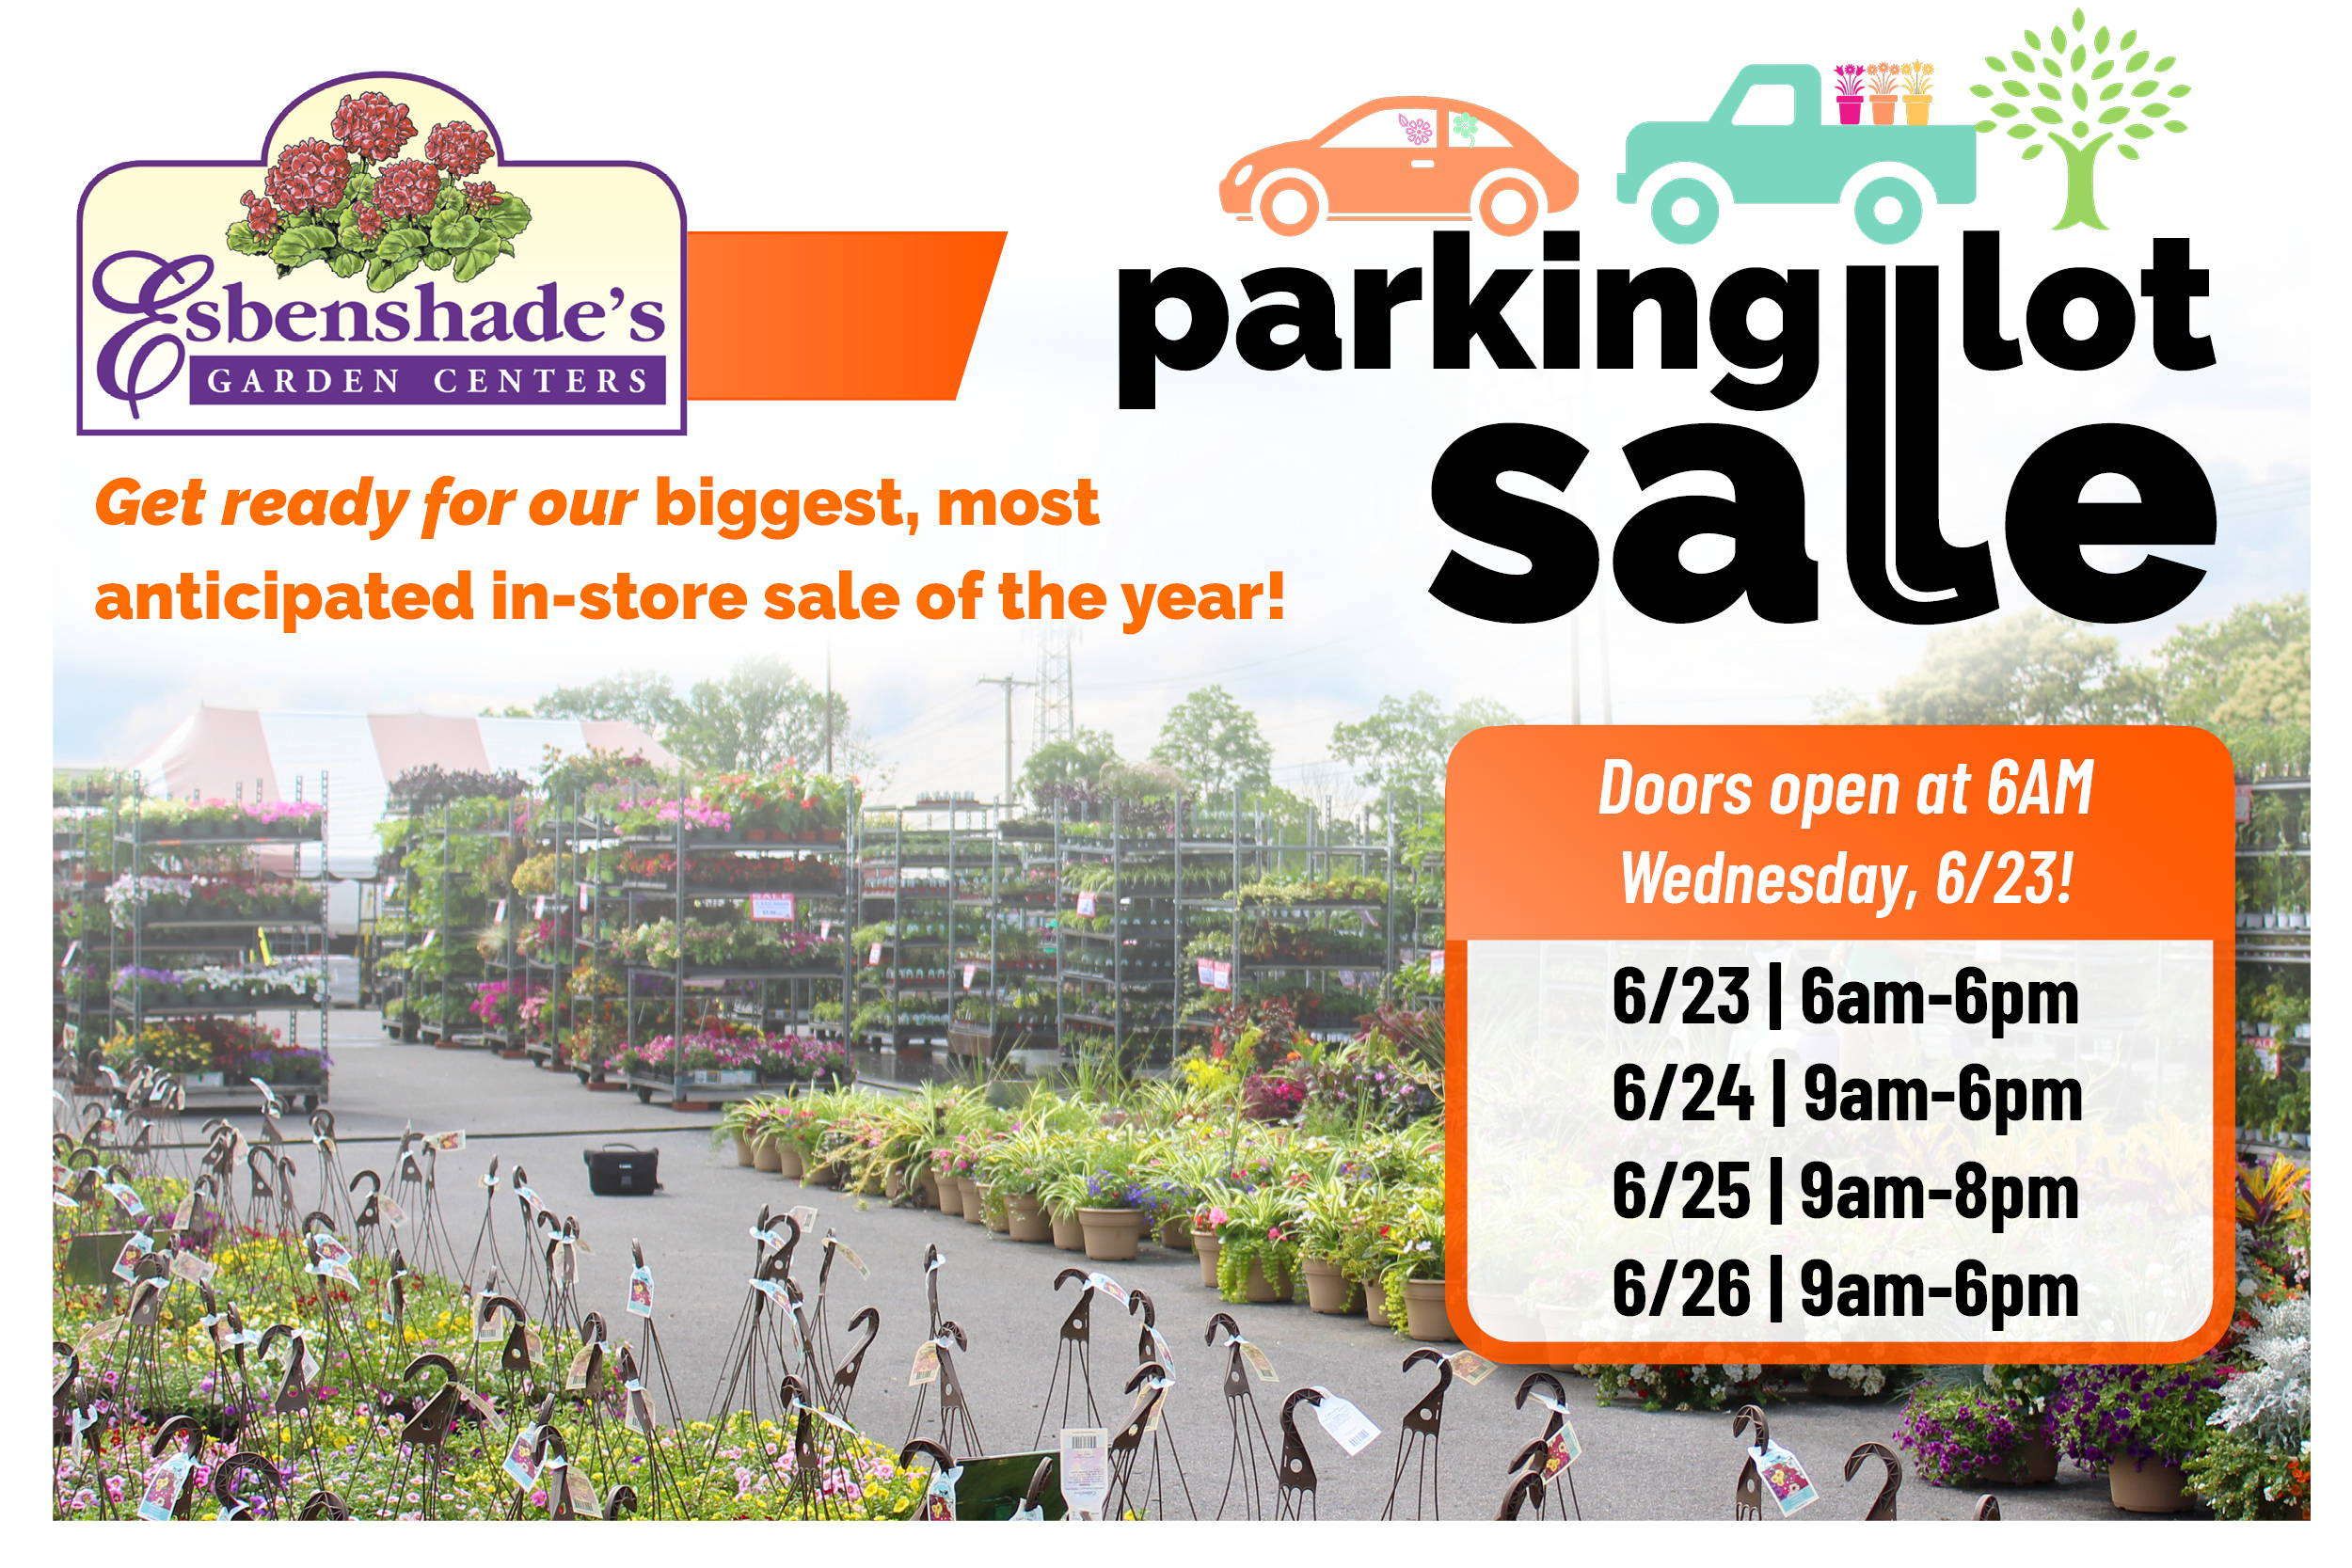 Parking Lot Sale - Get Ready for our biggest, most anticipated sale of the year! 6/23 - 6/26. Click for more details.